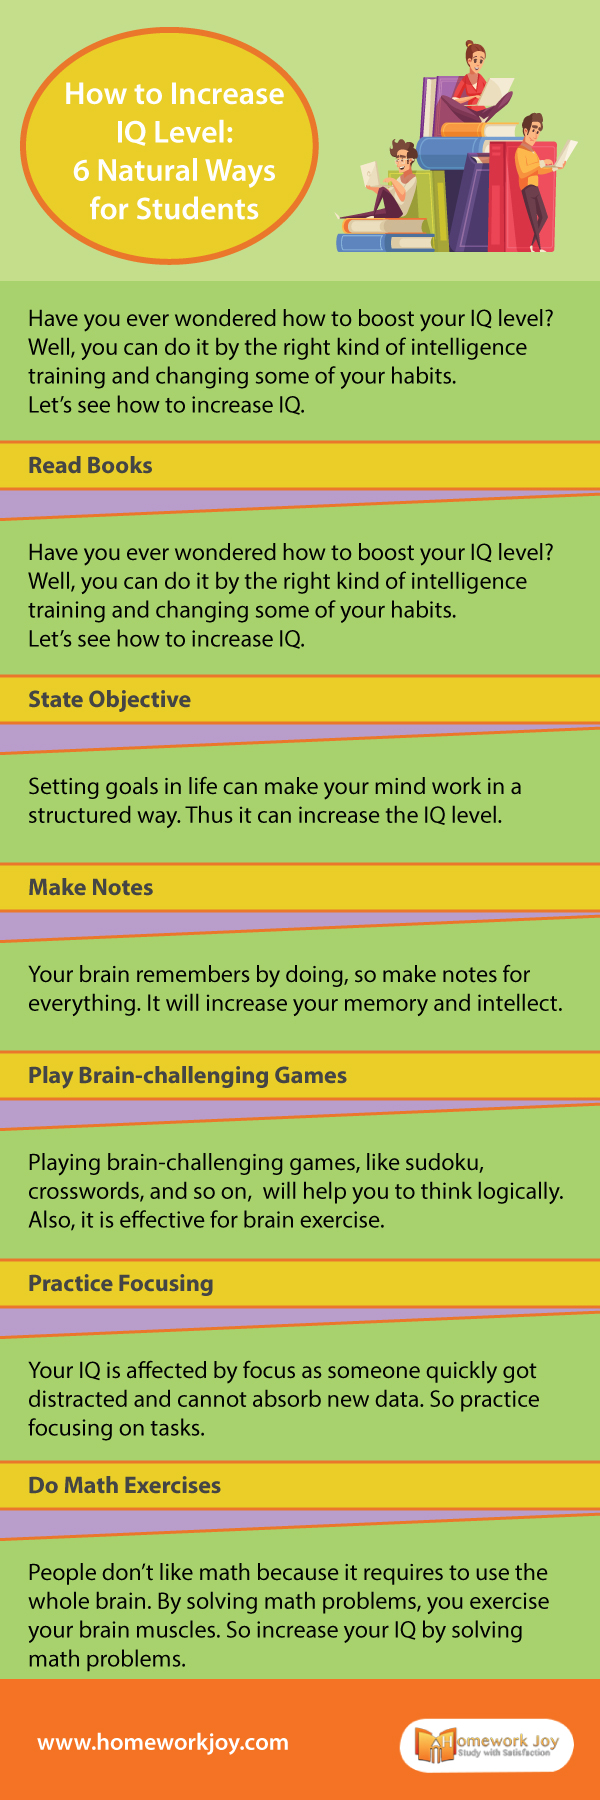 How to Increase IQ Level 7 Natural Ways for Students